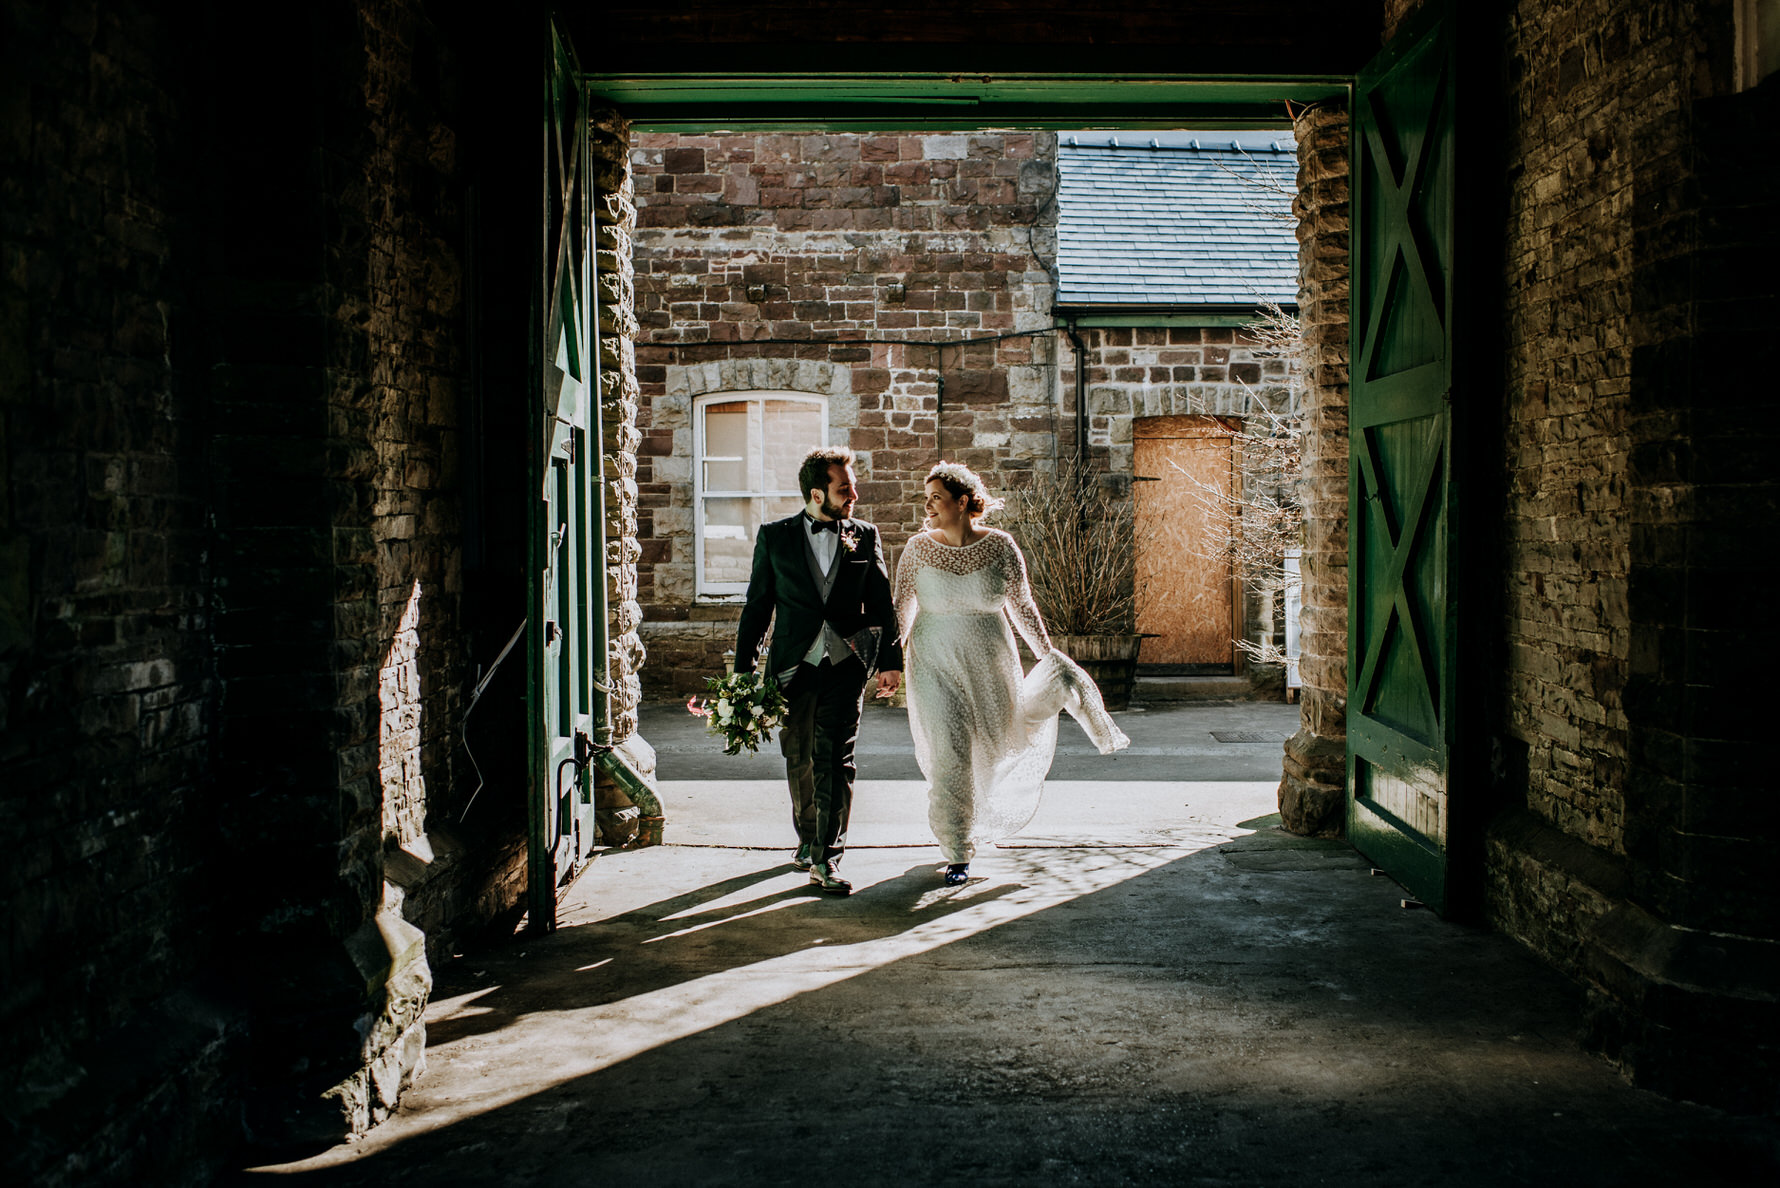 Wedding Photojournalism - A bride and groom walking through an archway